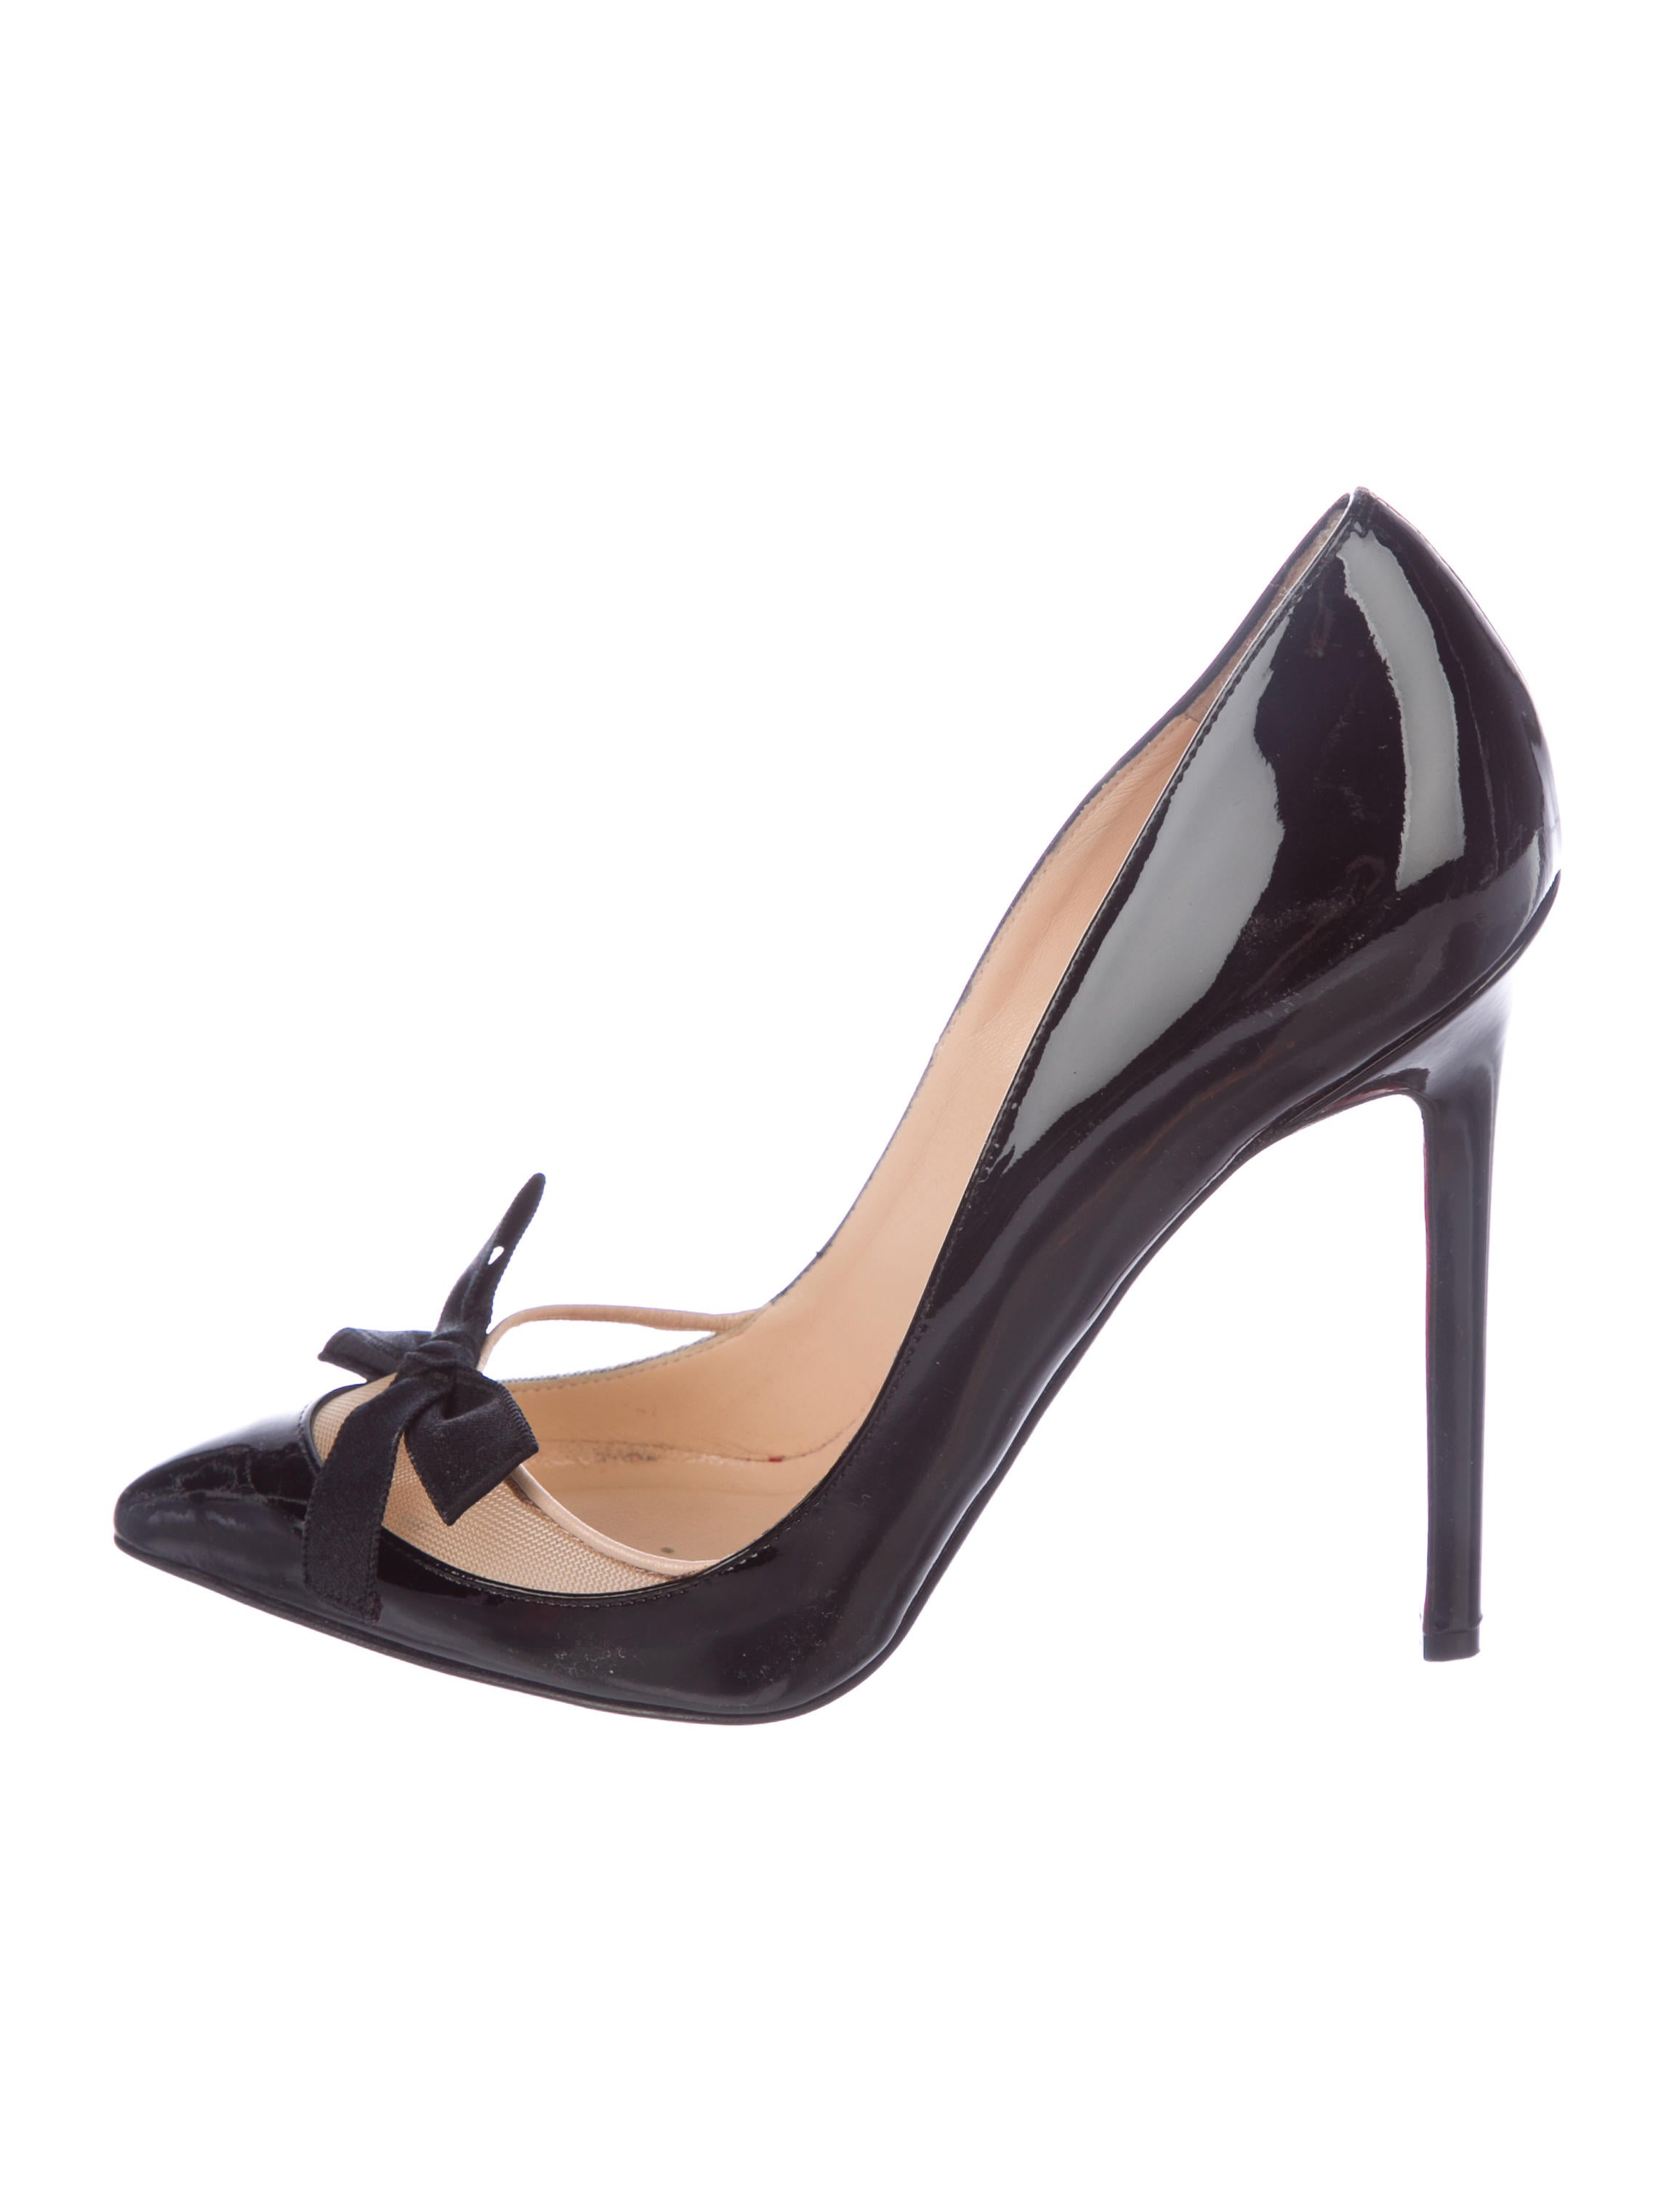 Christian Louboutin Leather Bow-Accented Pumps outlet sast free shipping buy cheap best wholesale xZQEO